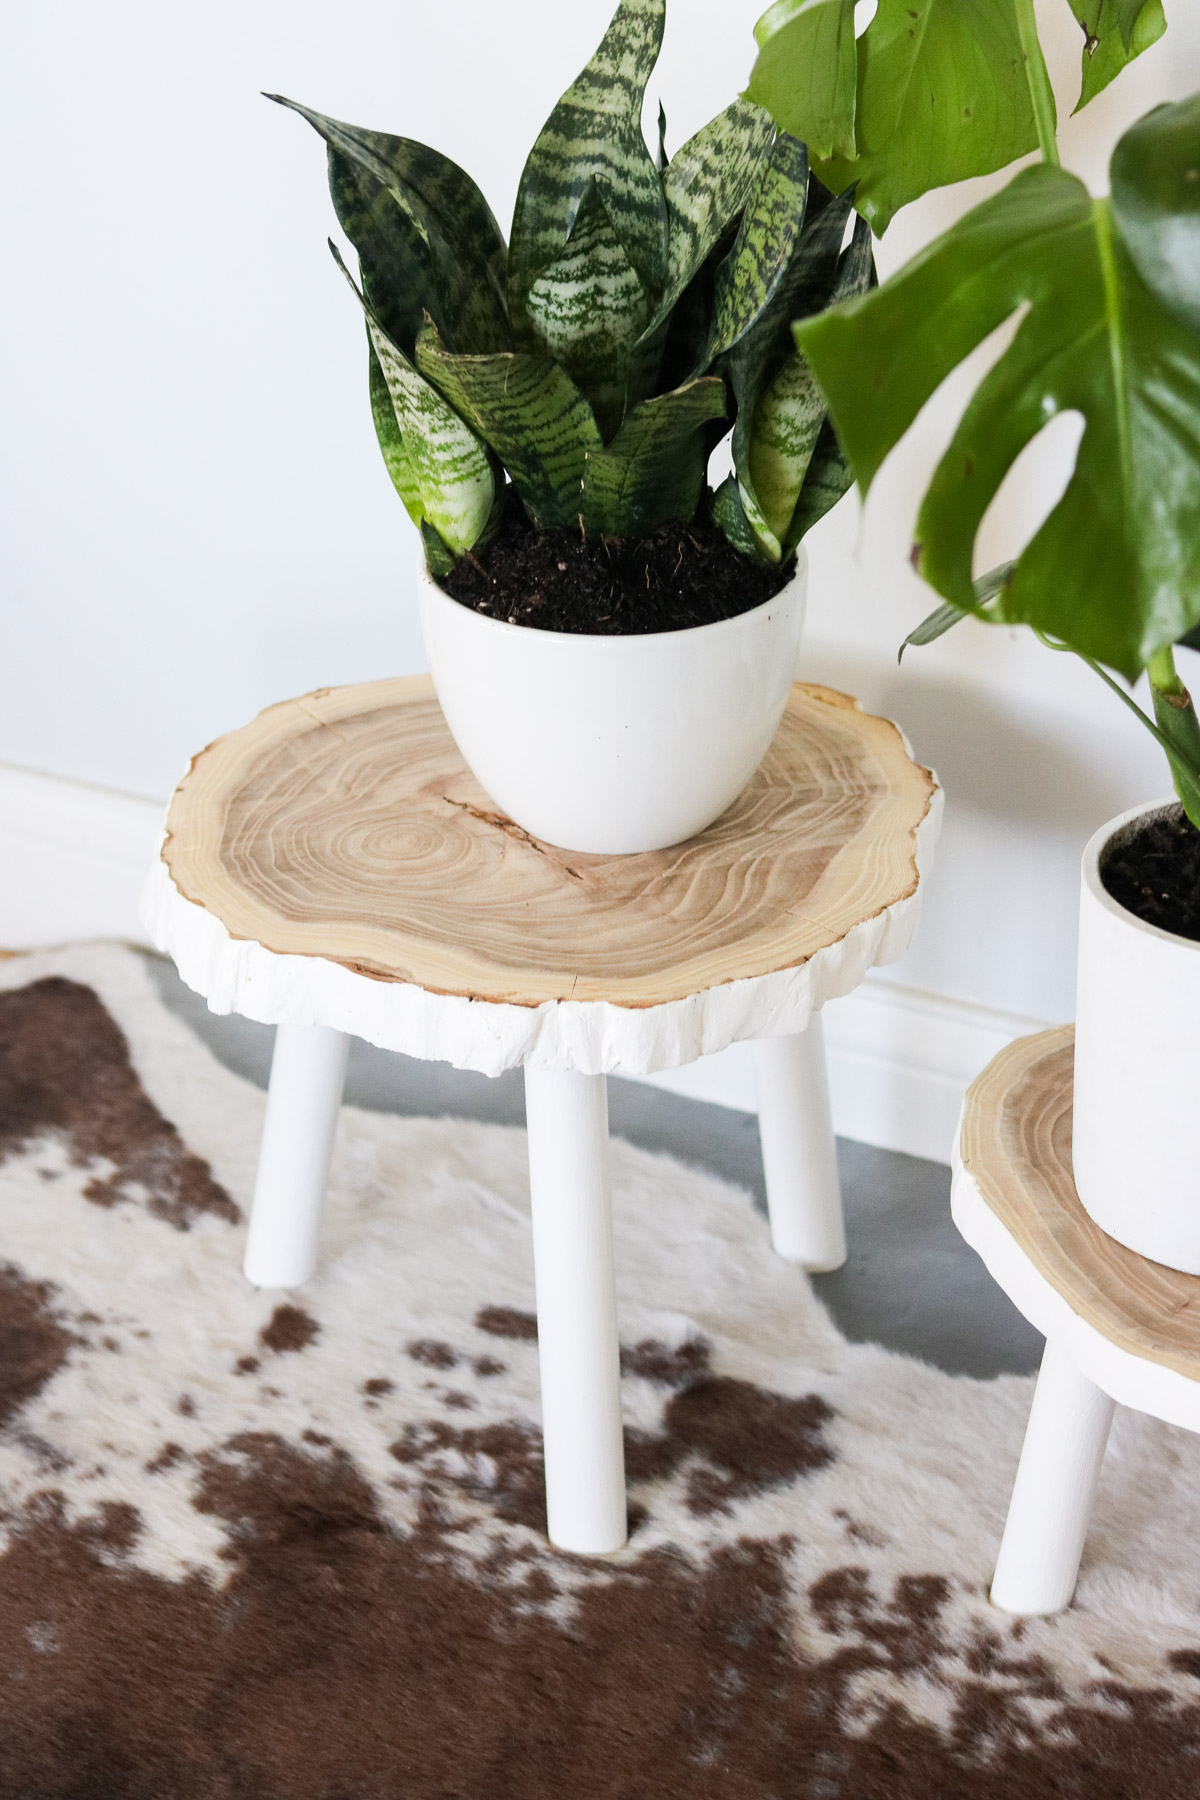 DIY Plant Stand from Wood By Lily Ardor